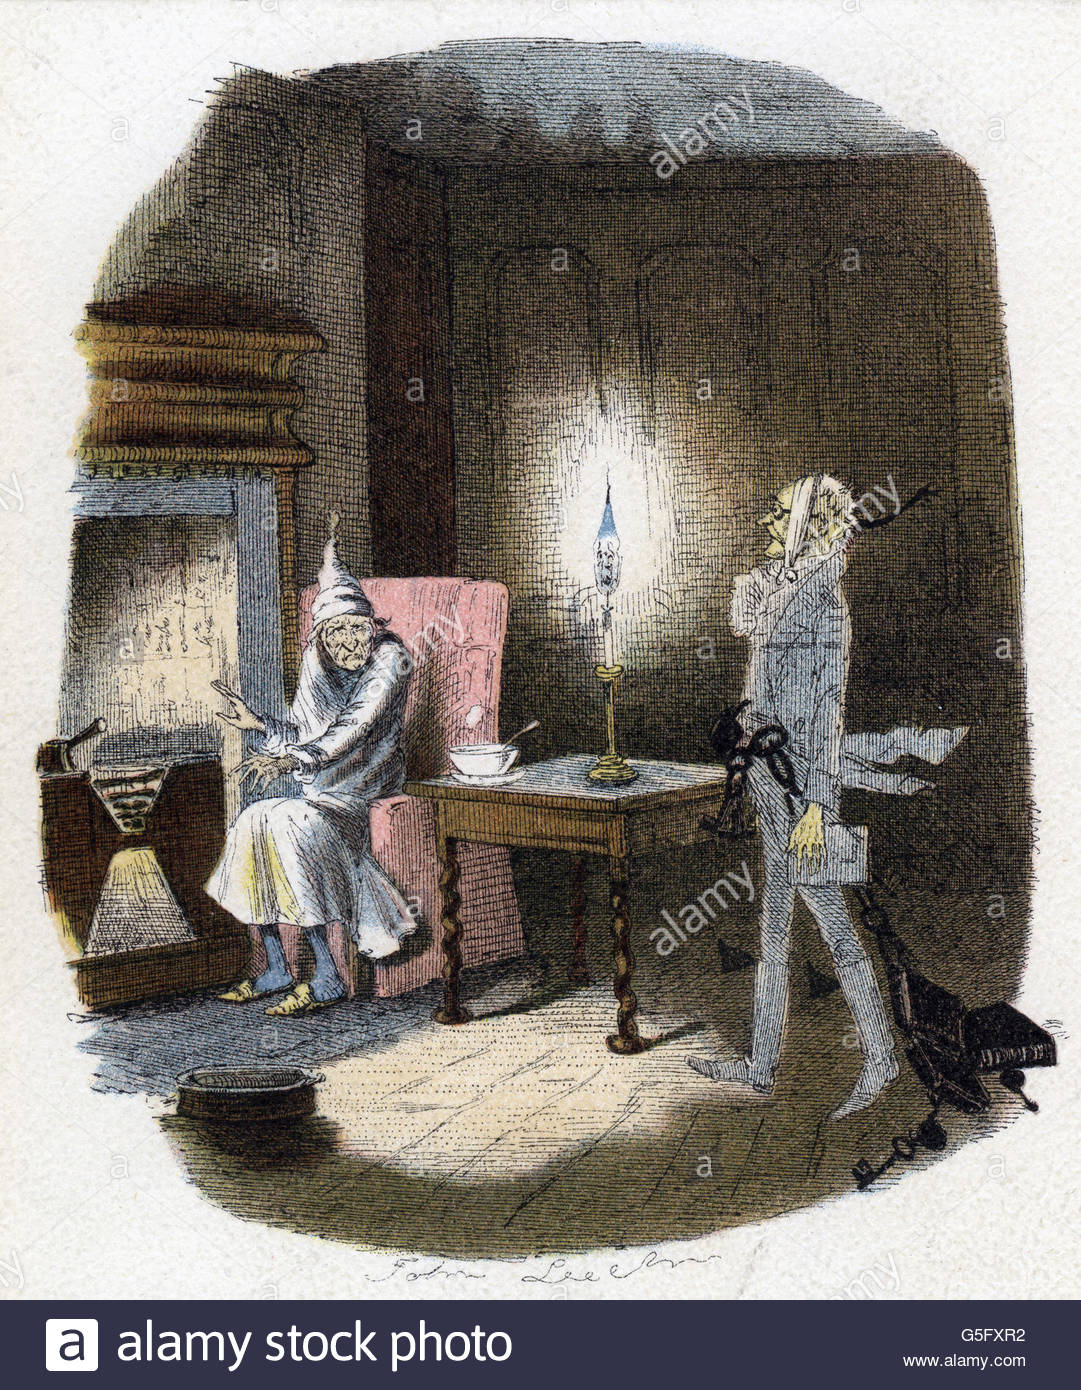 Dickens, Charles, 7.2.1812 - 9.7.1878, British author / writer, scene out of his novel 'Christmas Carol', - Stock Image